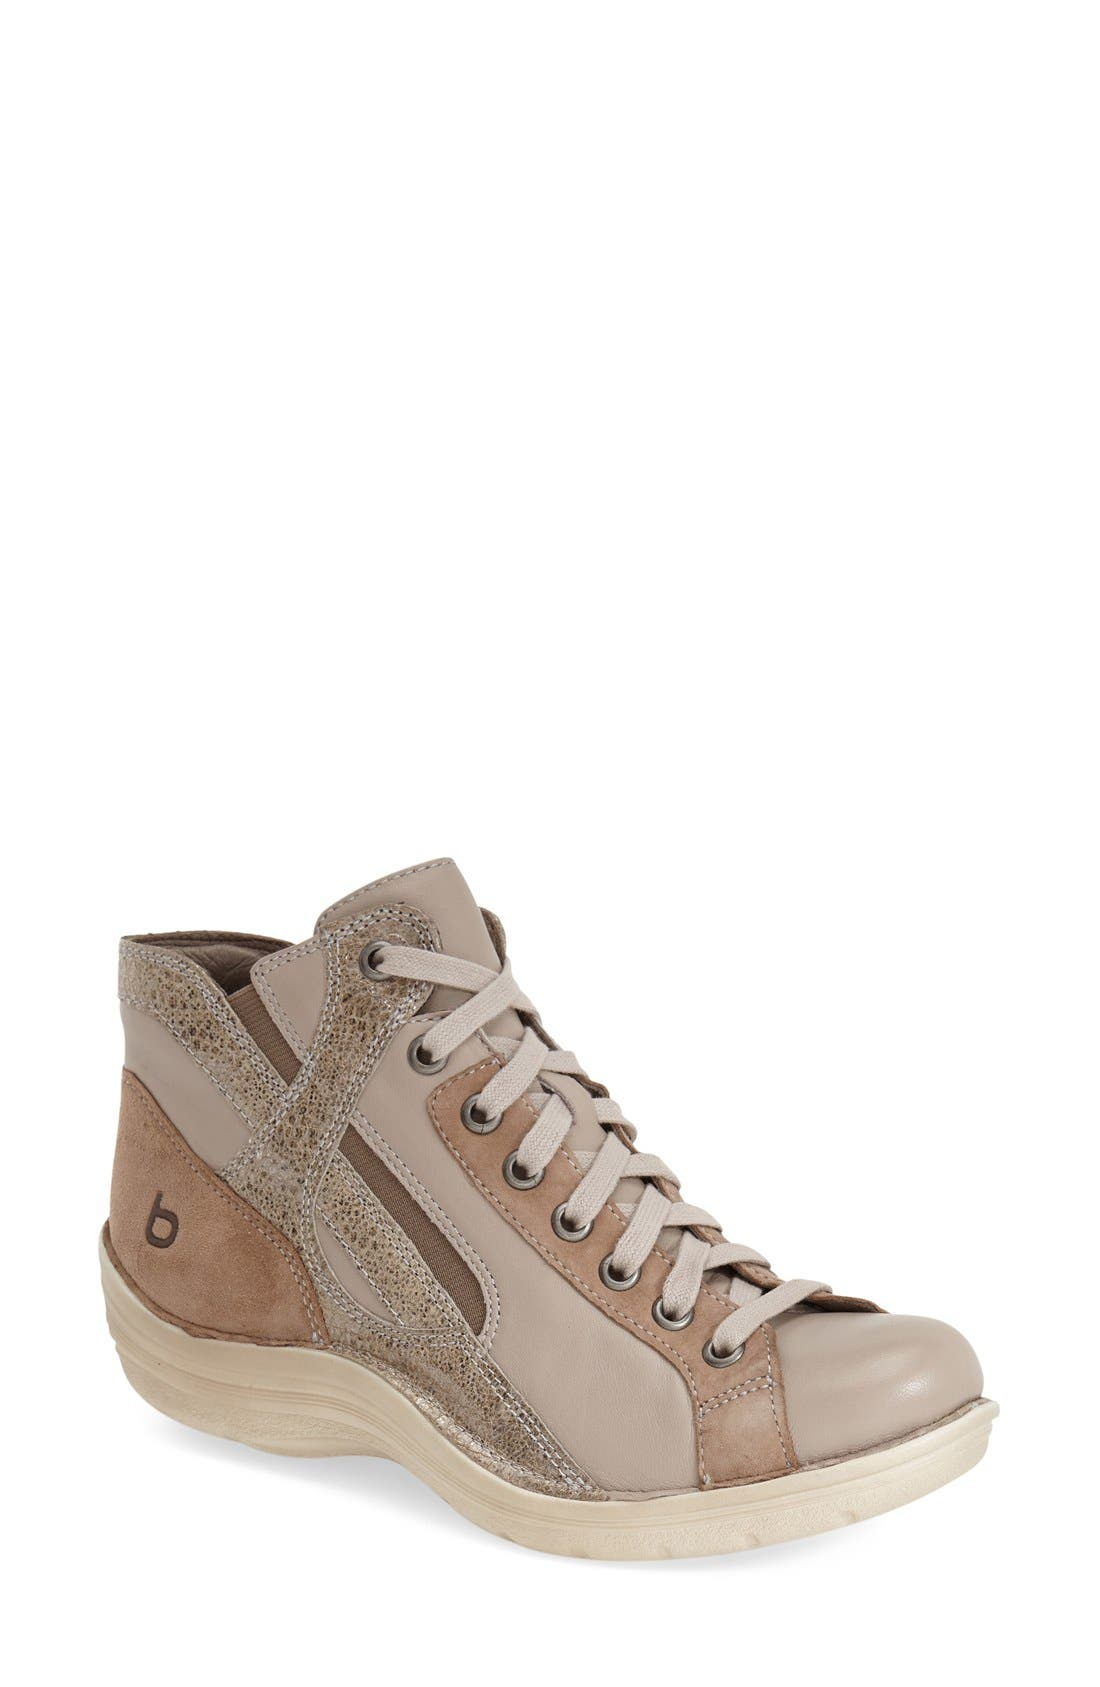 bionica 'Orbit' Boot (Women)